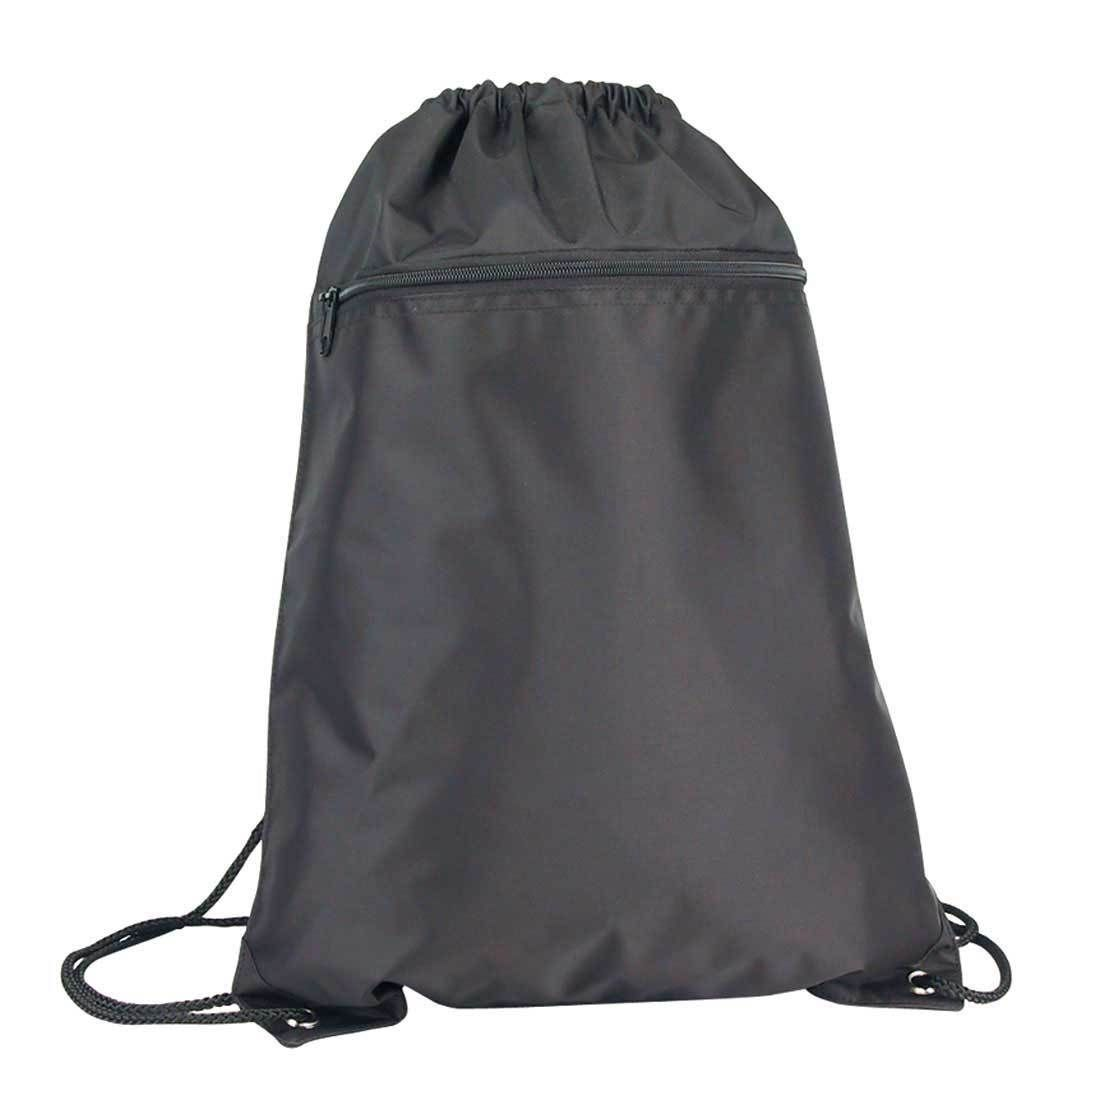 29fe8737b90d Drawstring Backpack in 2019 | Products | Drawstring backpack ...